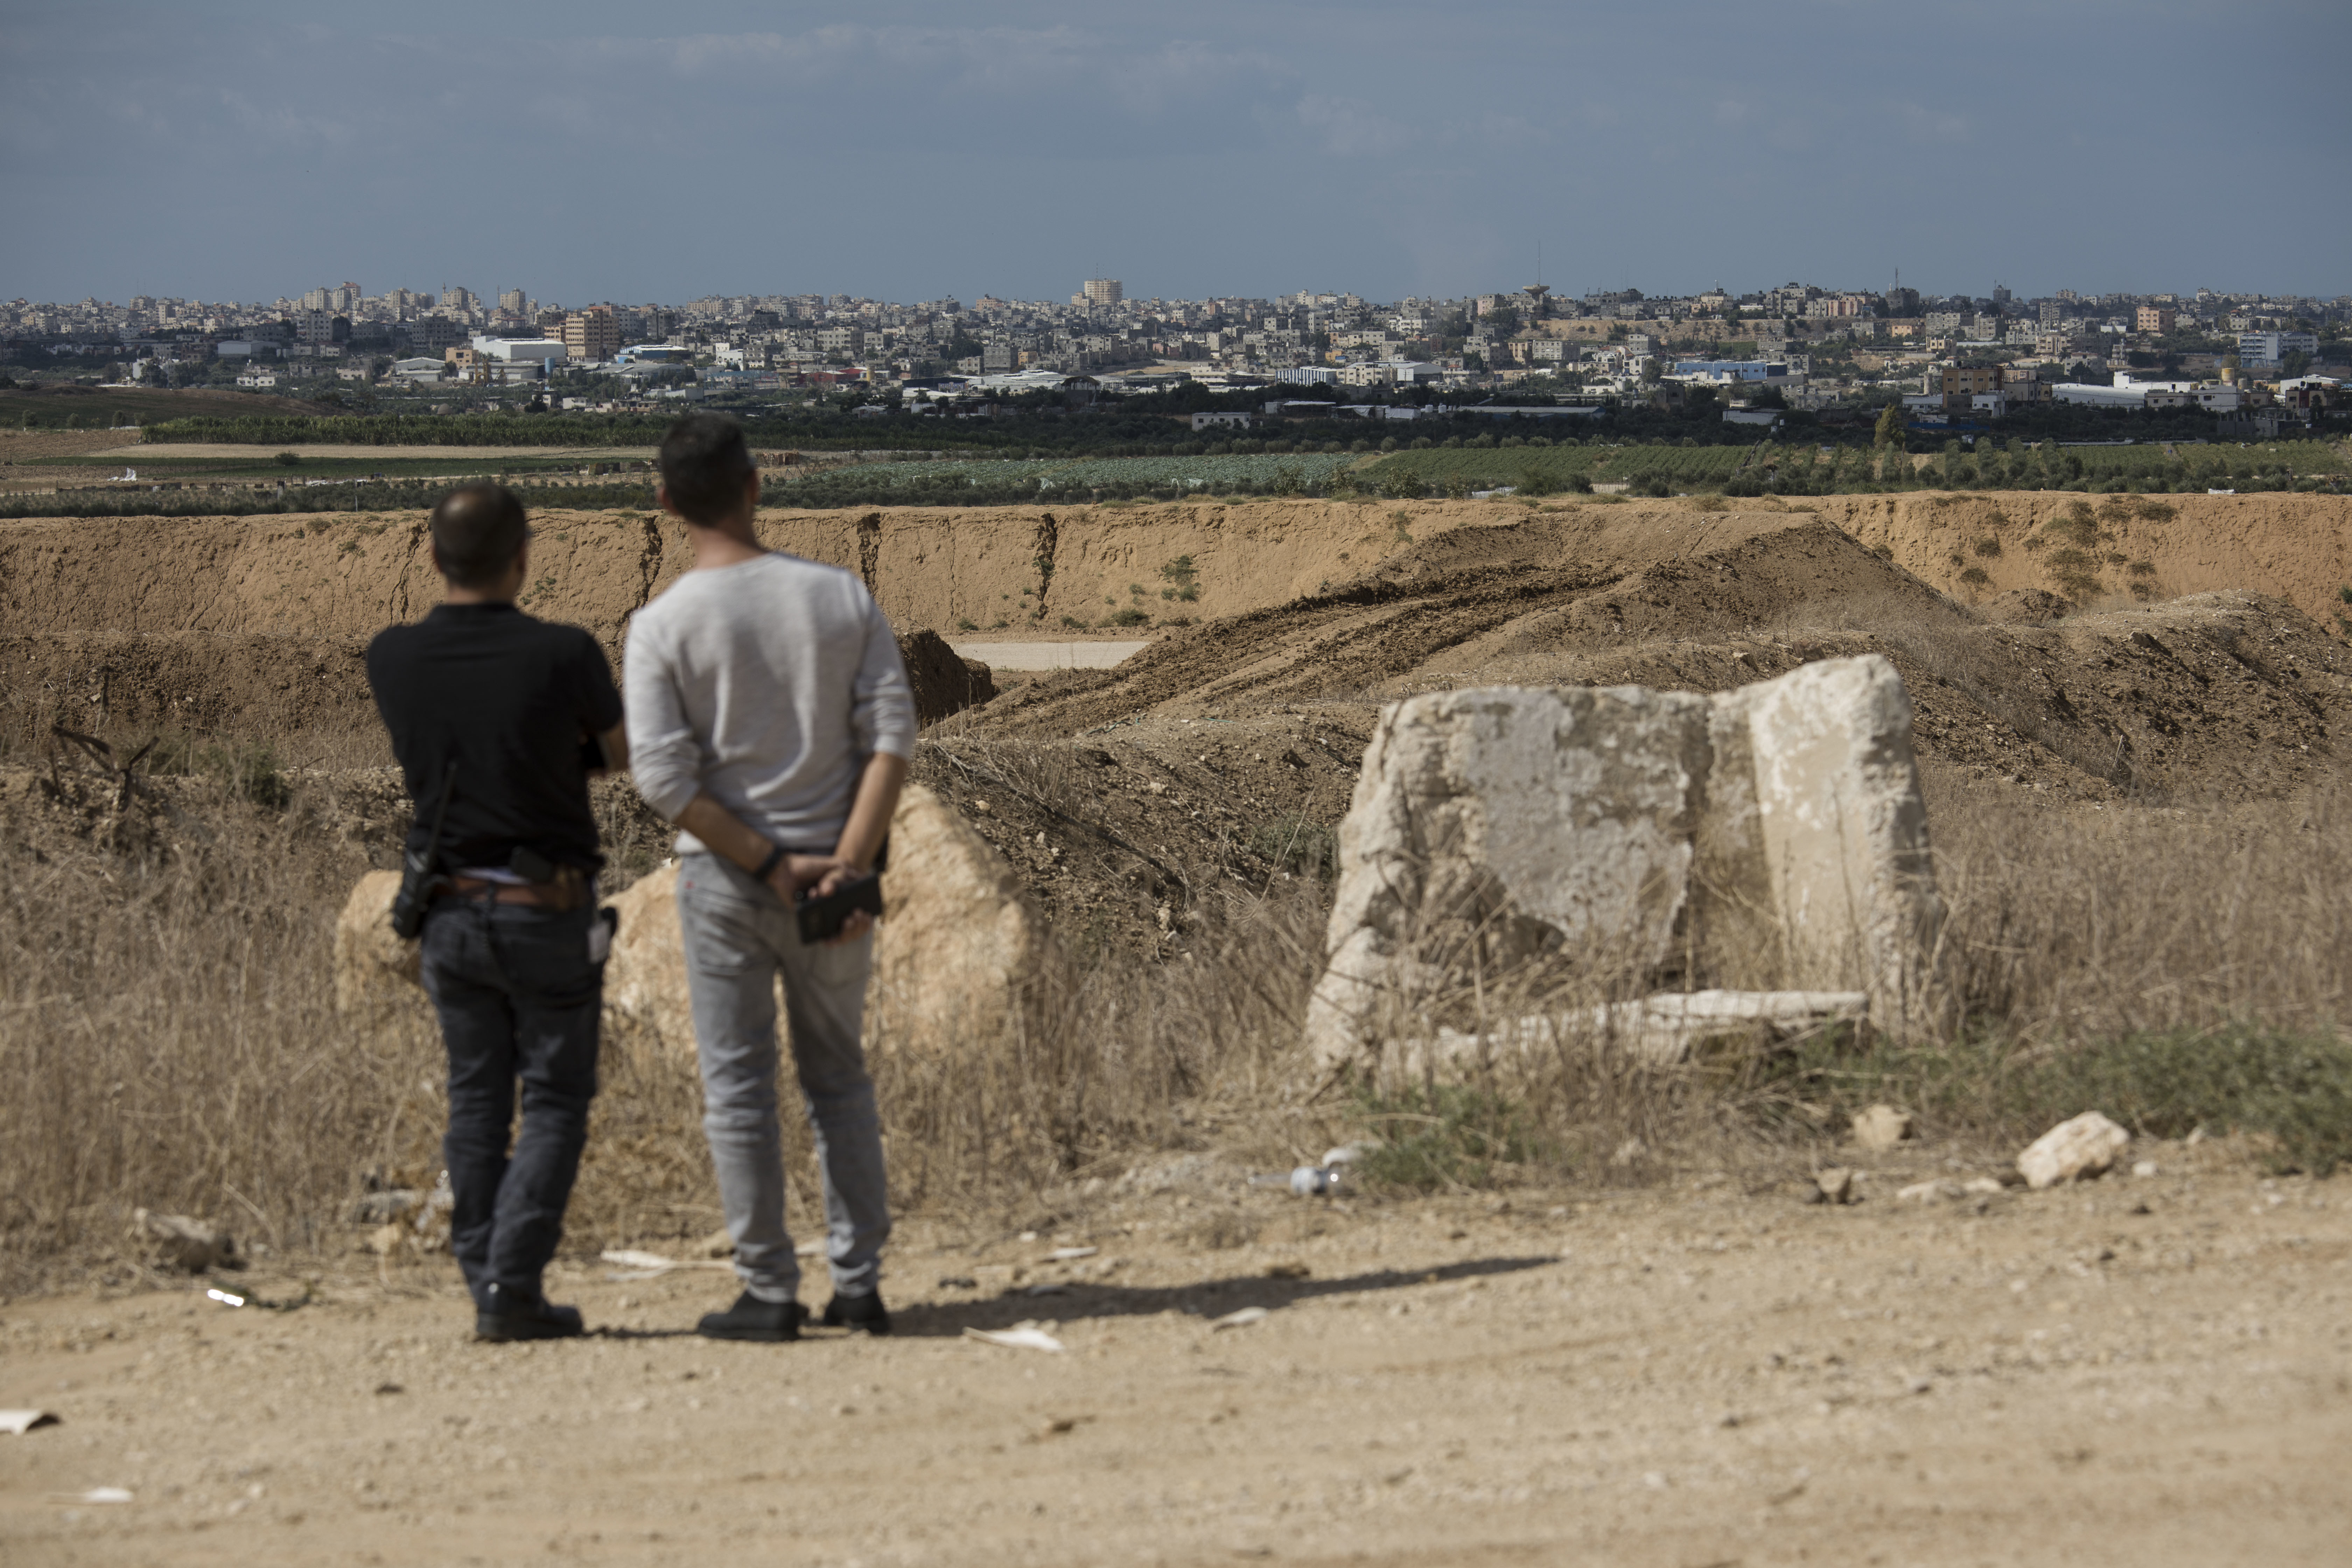 Israelis look at the Gaza Strip border, Saturday, Oct. 27, 2018. The Israeli military has struck dozens of targets across the Gaza Strip in response to heavy rocket fire and threatened to expand its air campaign to Syria after accusing Iranian forces in Damascus of orchestrating the rocket attacks. (AP Photo/Tsafrir Abayov)